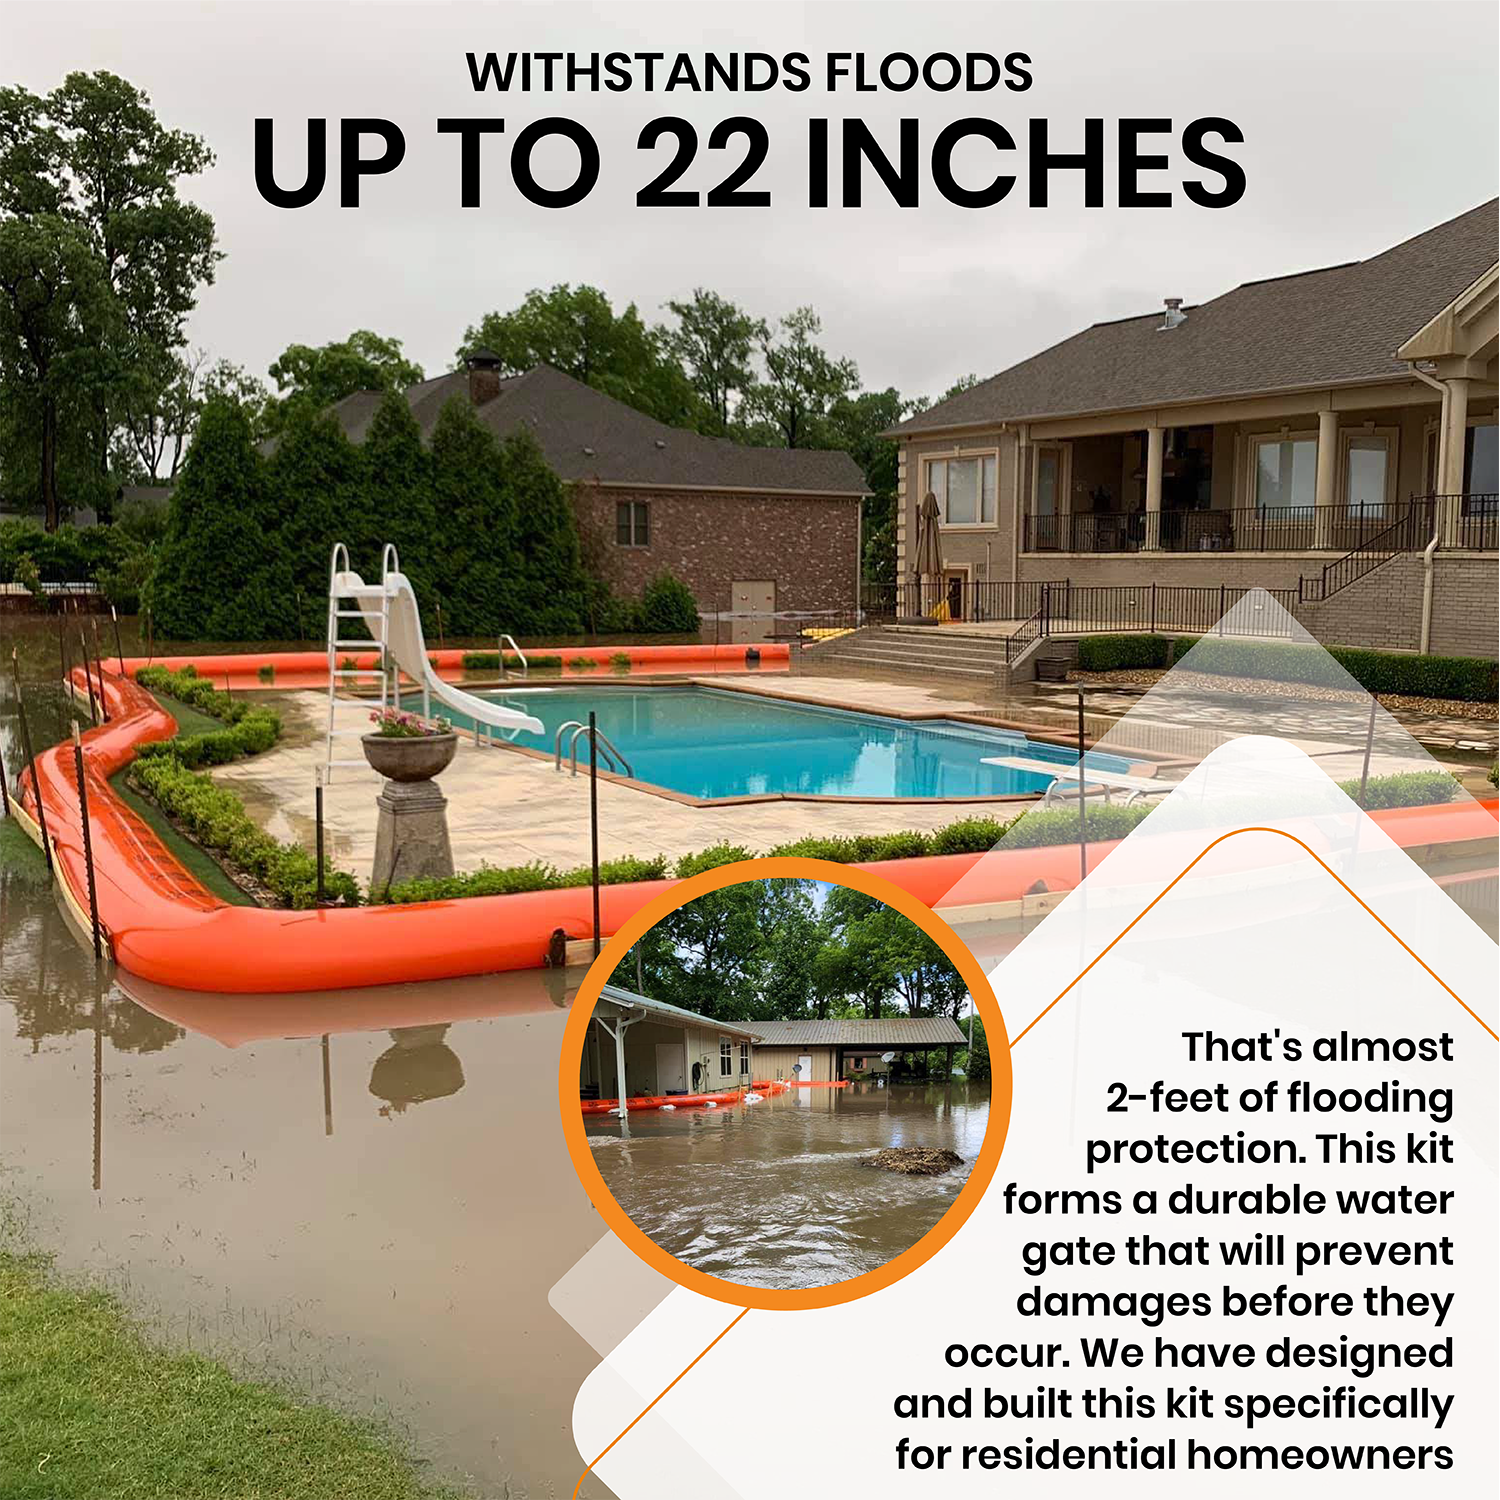 Withstands floods up to 22 inches.